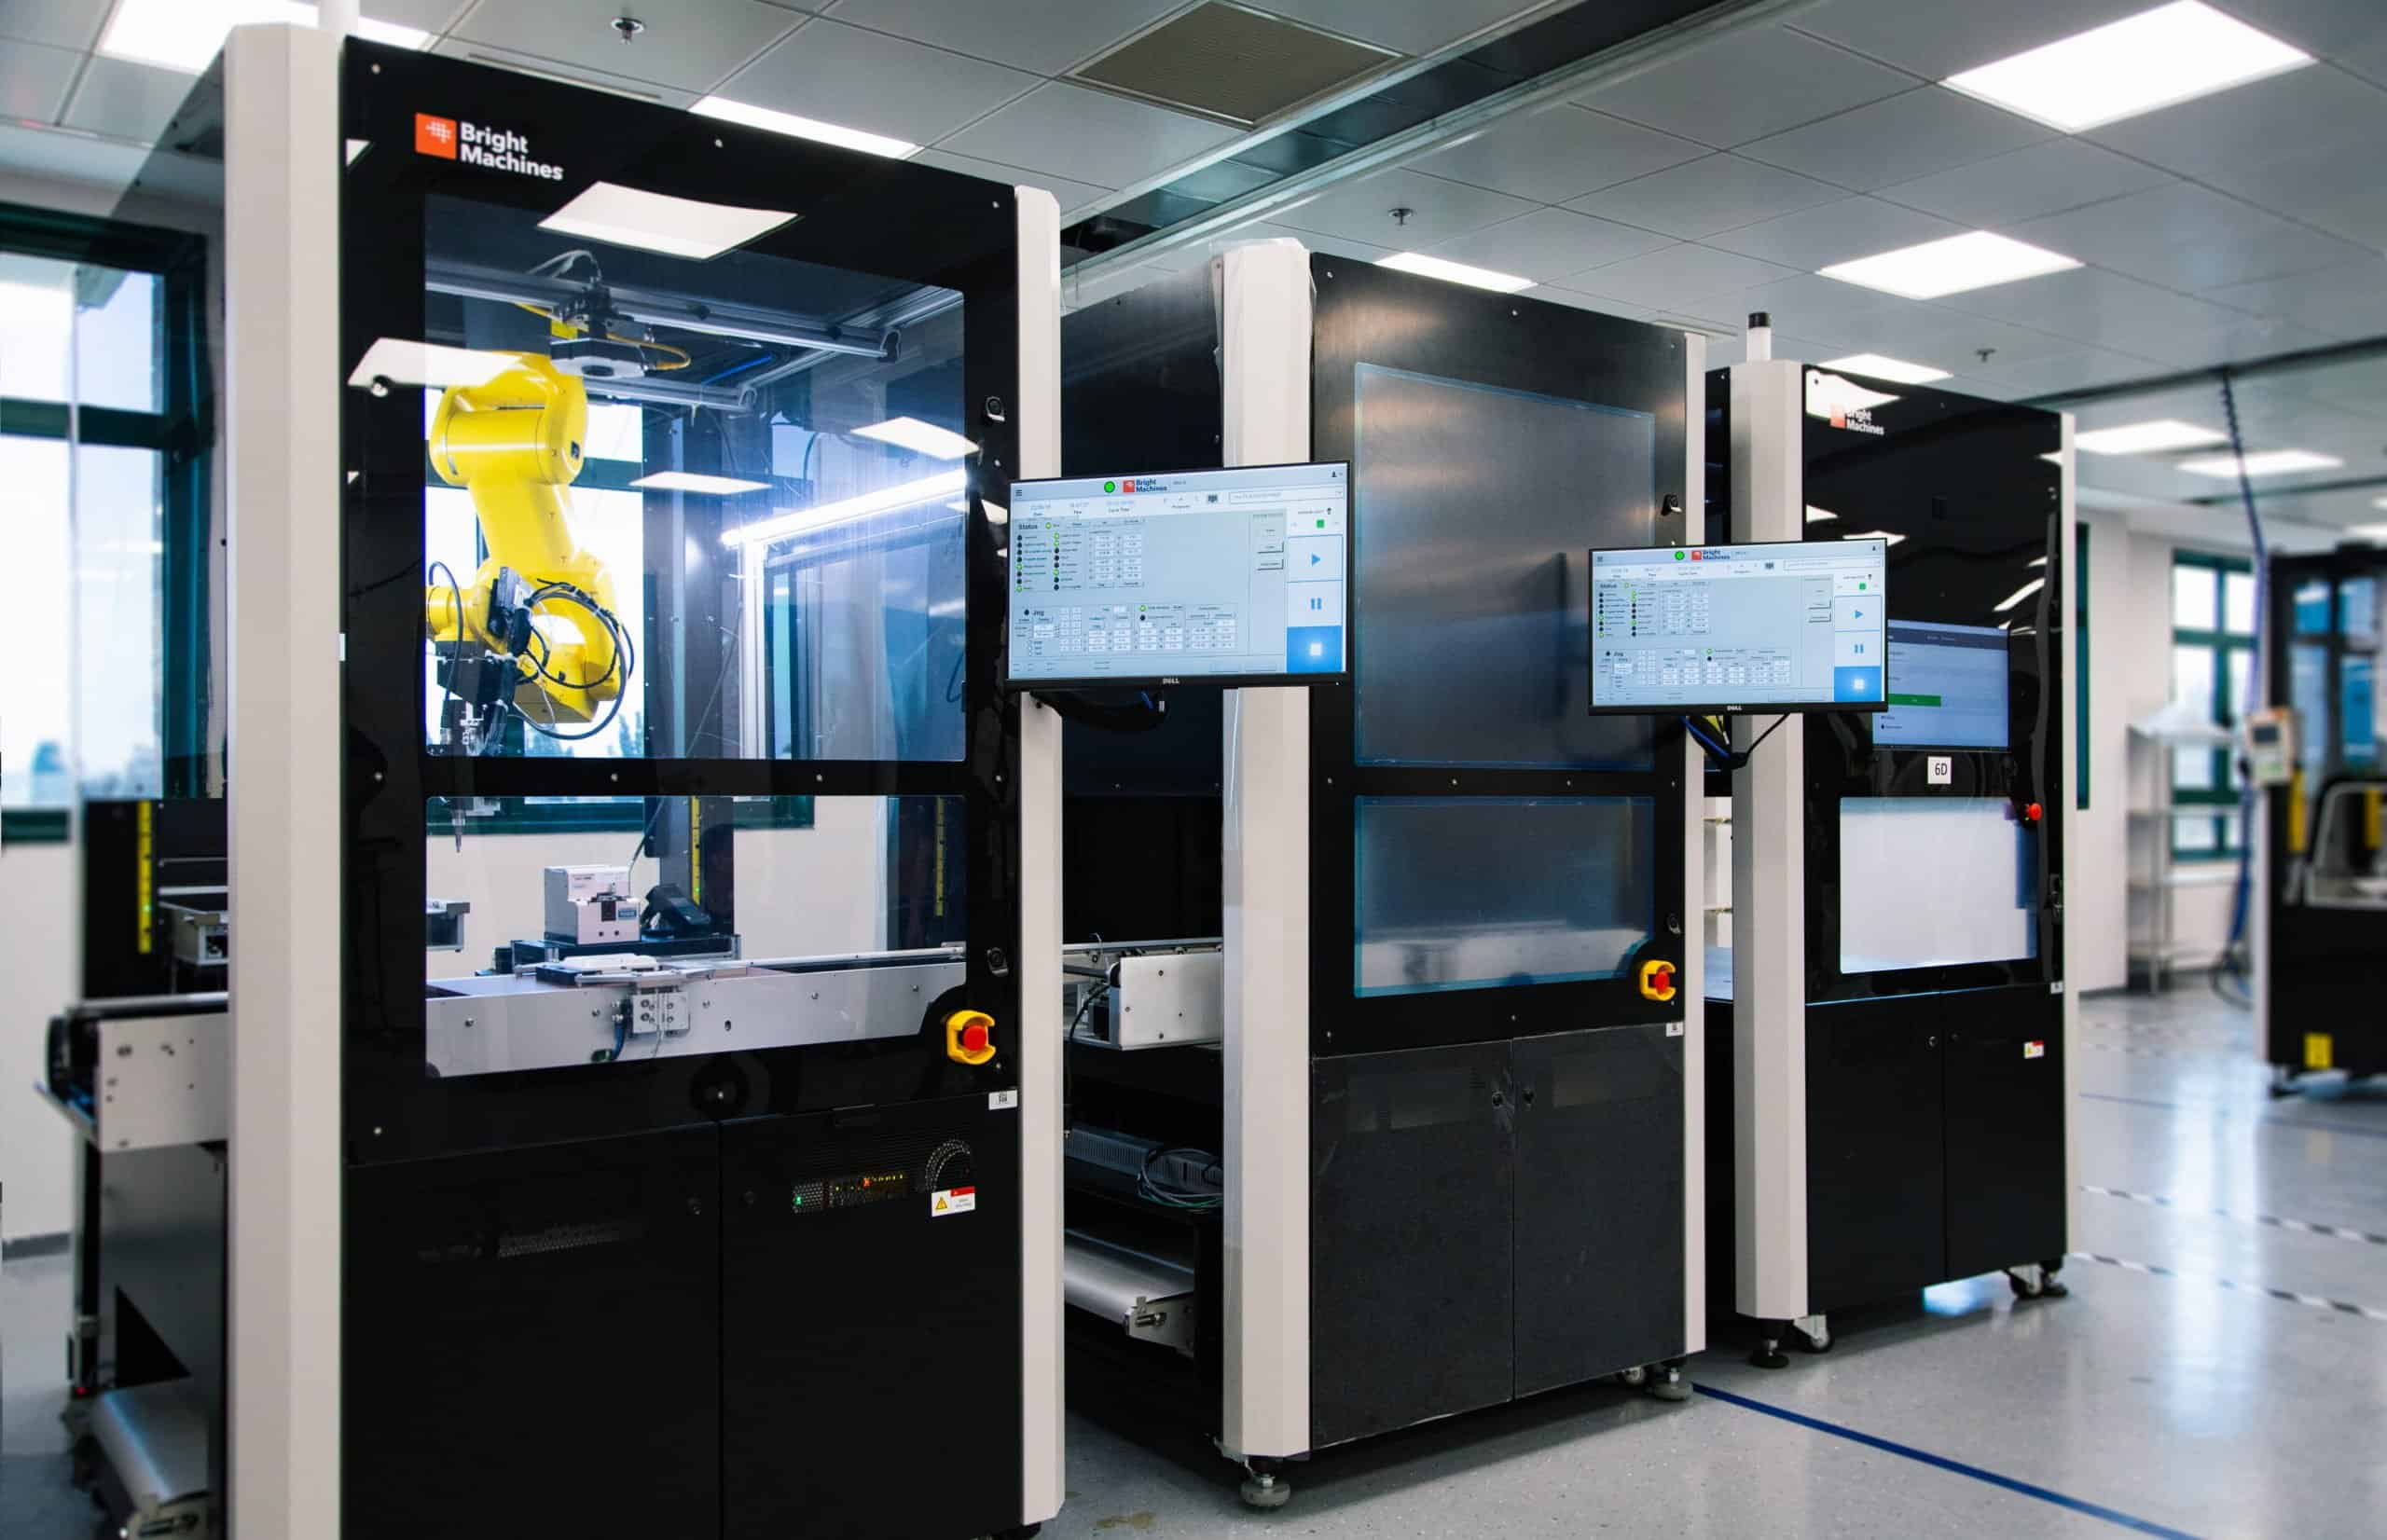 Bright Machines Microfactories In Action Image